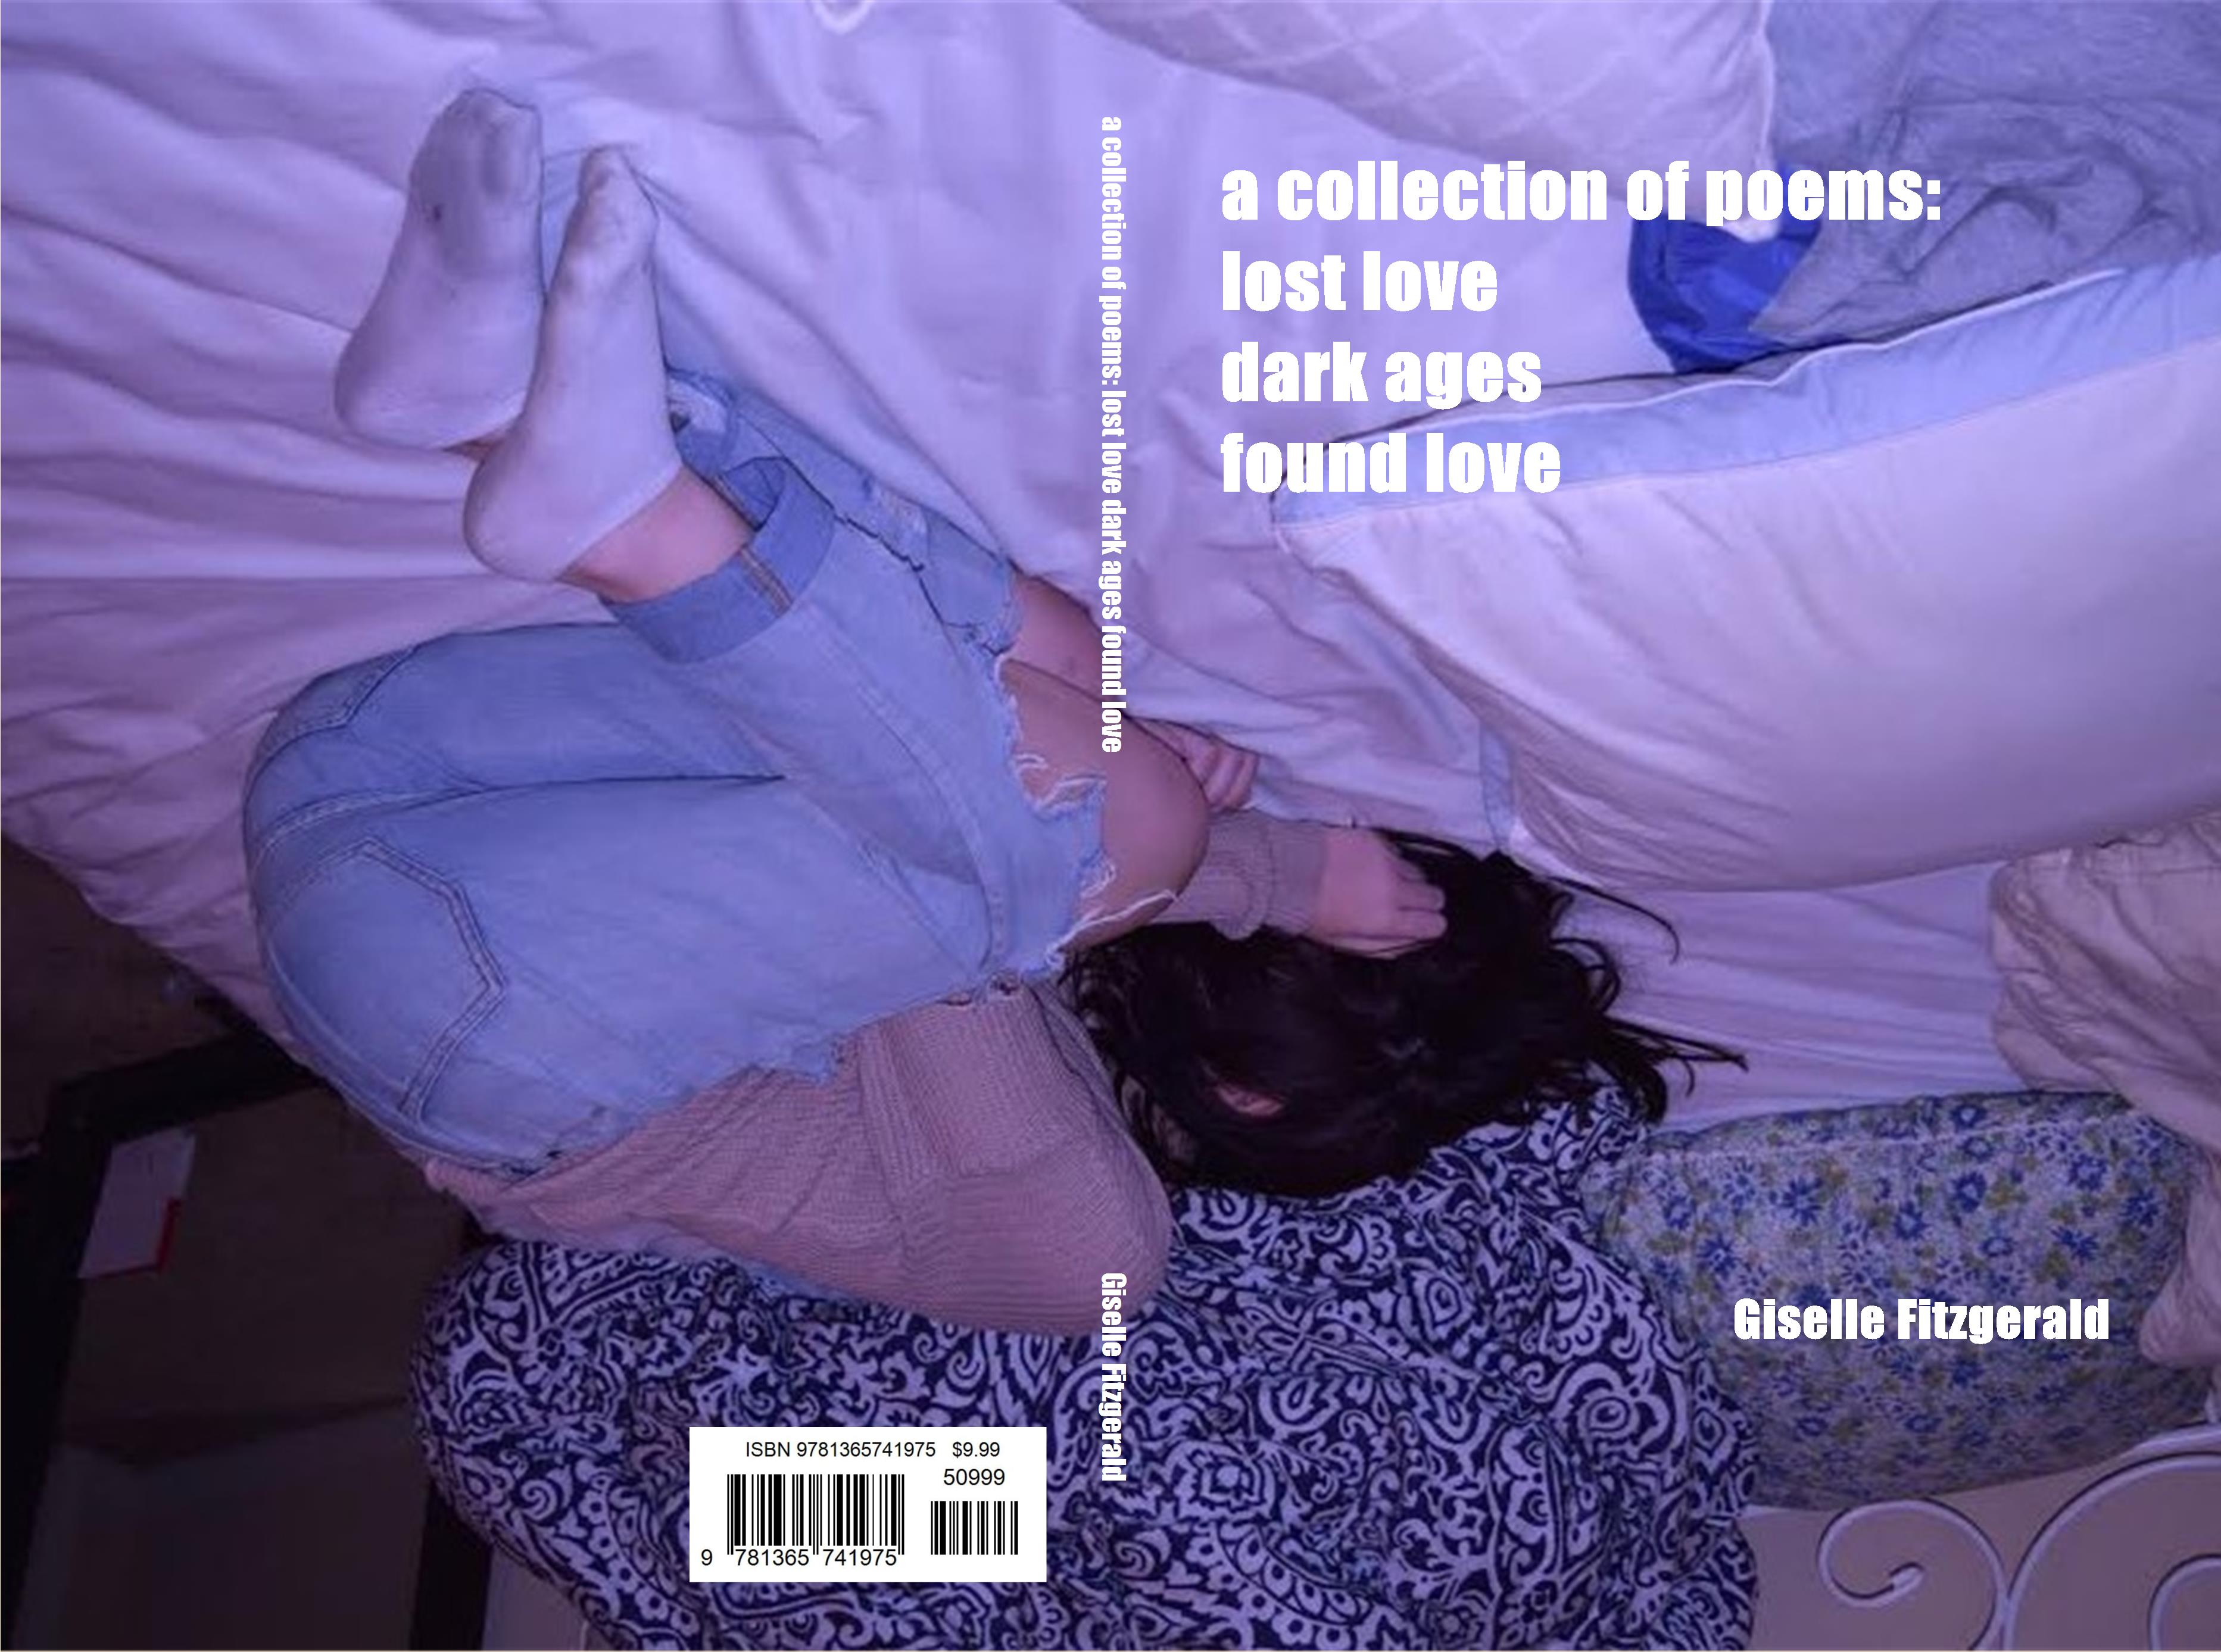 a collection of poems: lost love dark ages found love by